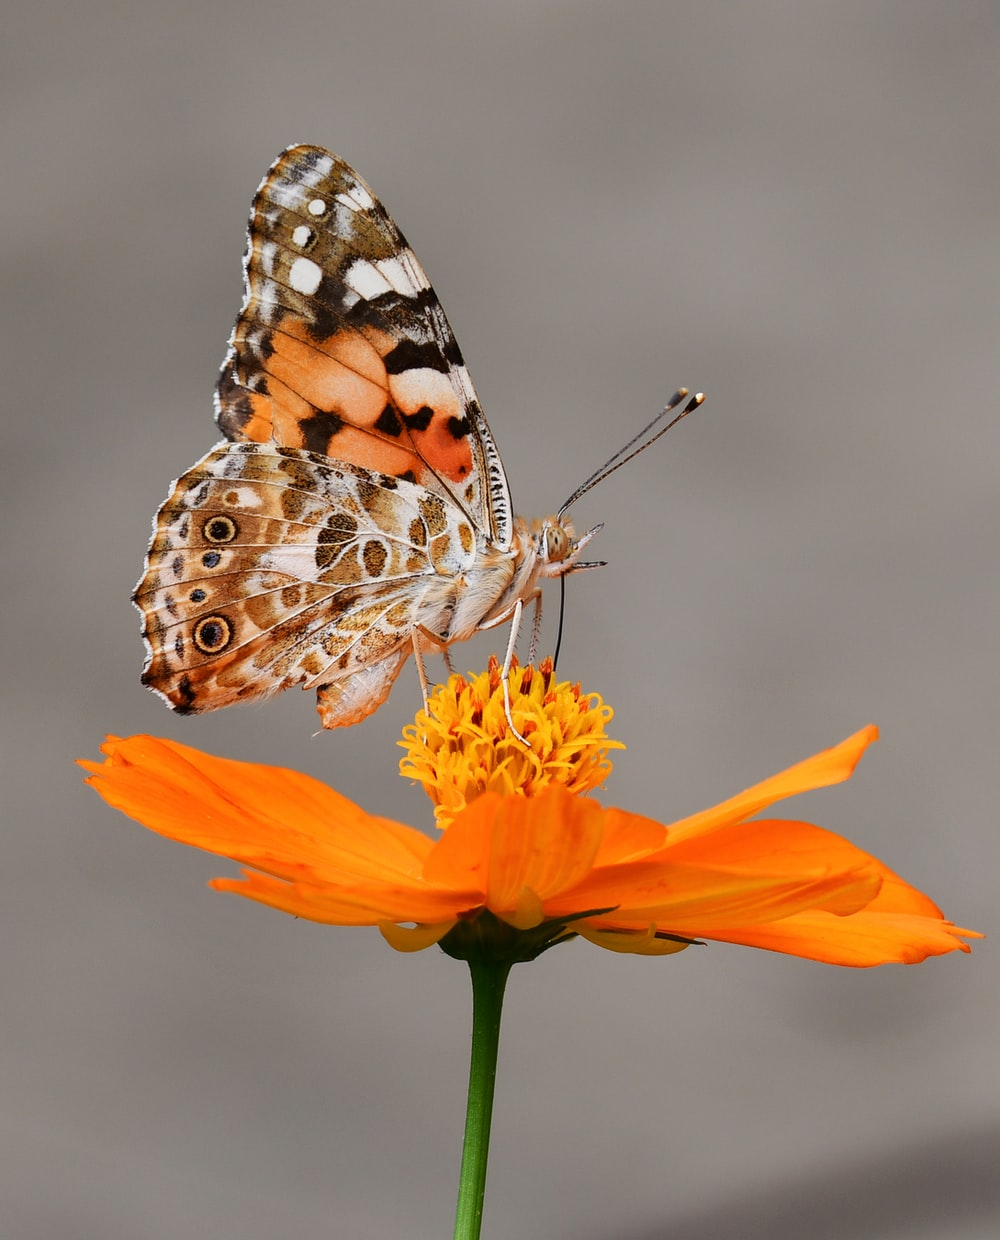 500 Insect Pictures Hd Download Free Images On Unsplash